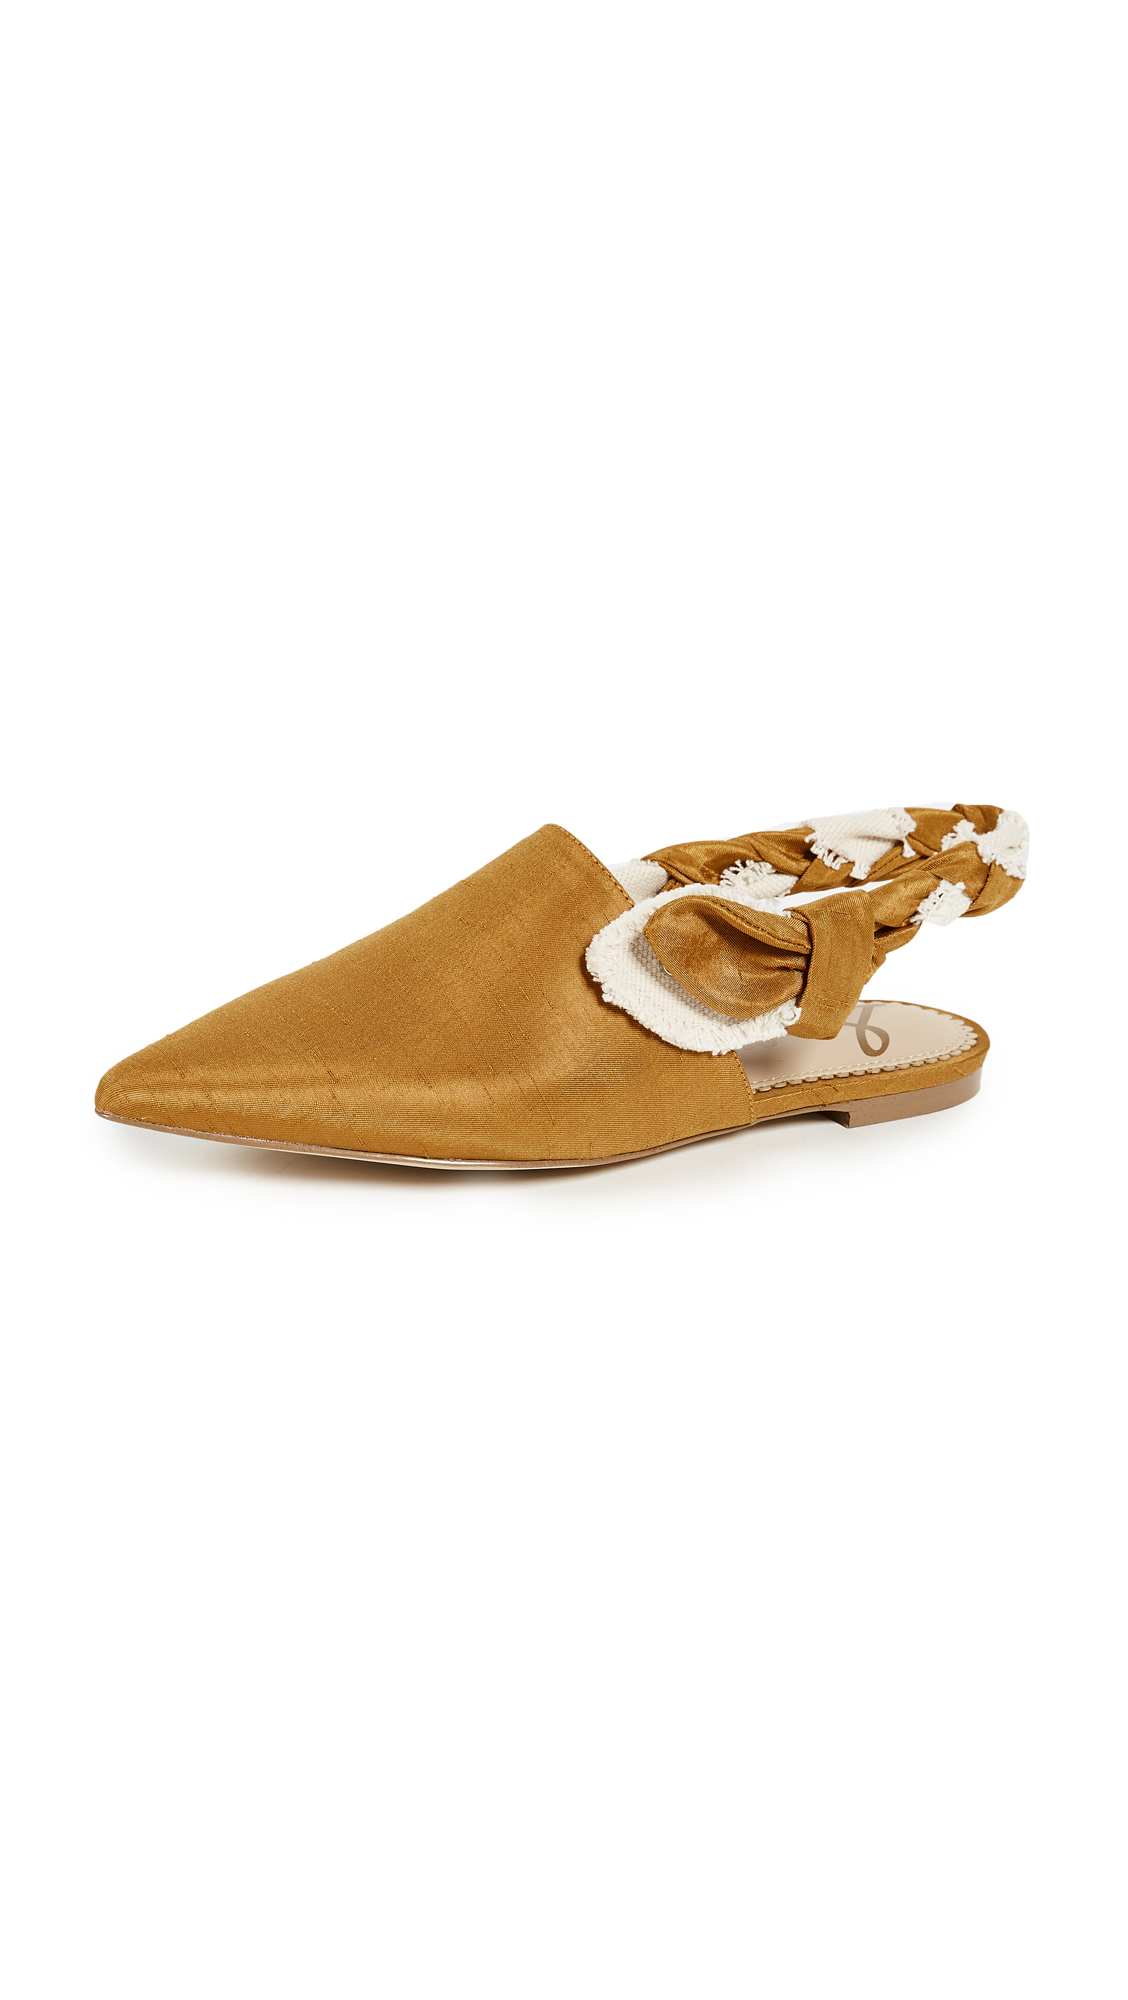 Sam Edelman Rivers Flats - Dark Golden Yellow/Ivory